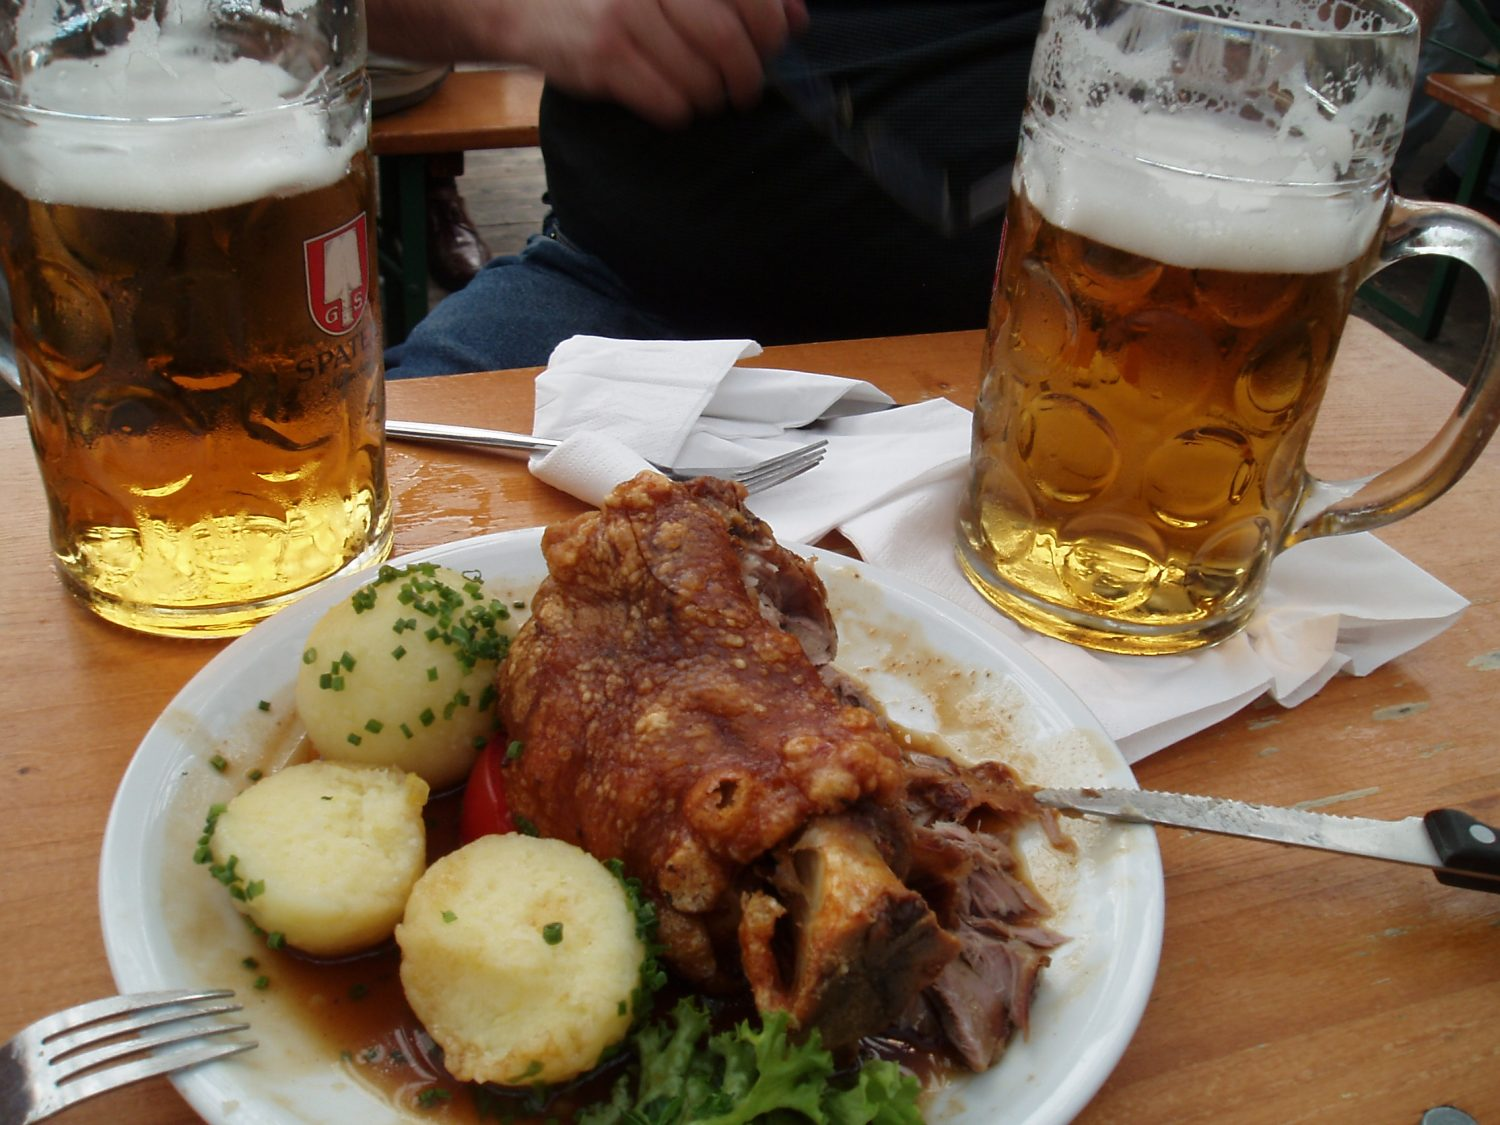 The Food served at Oktoberfest